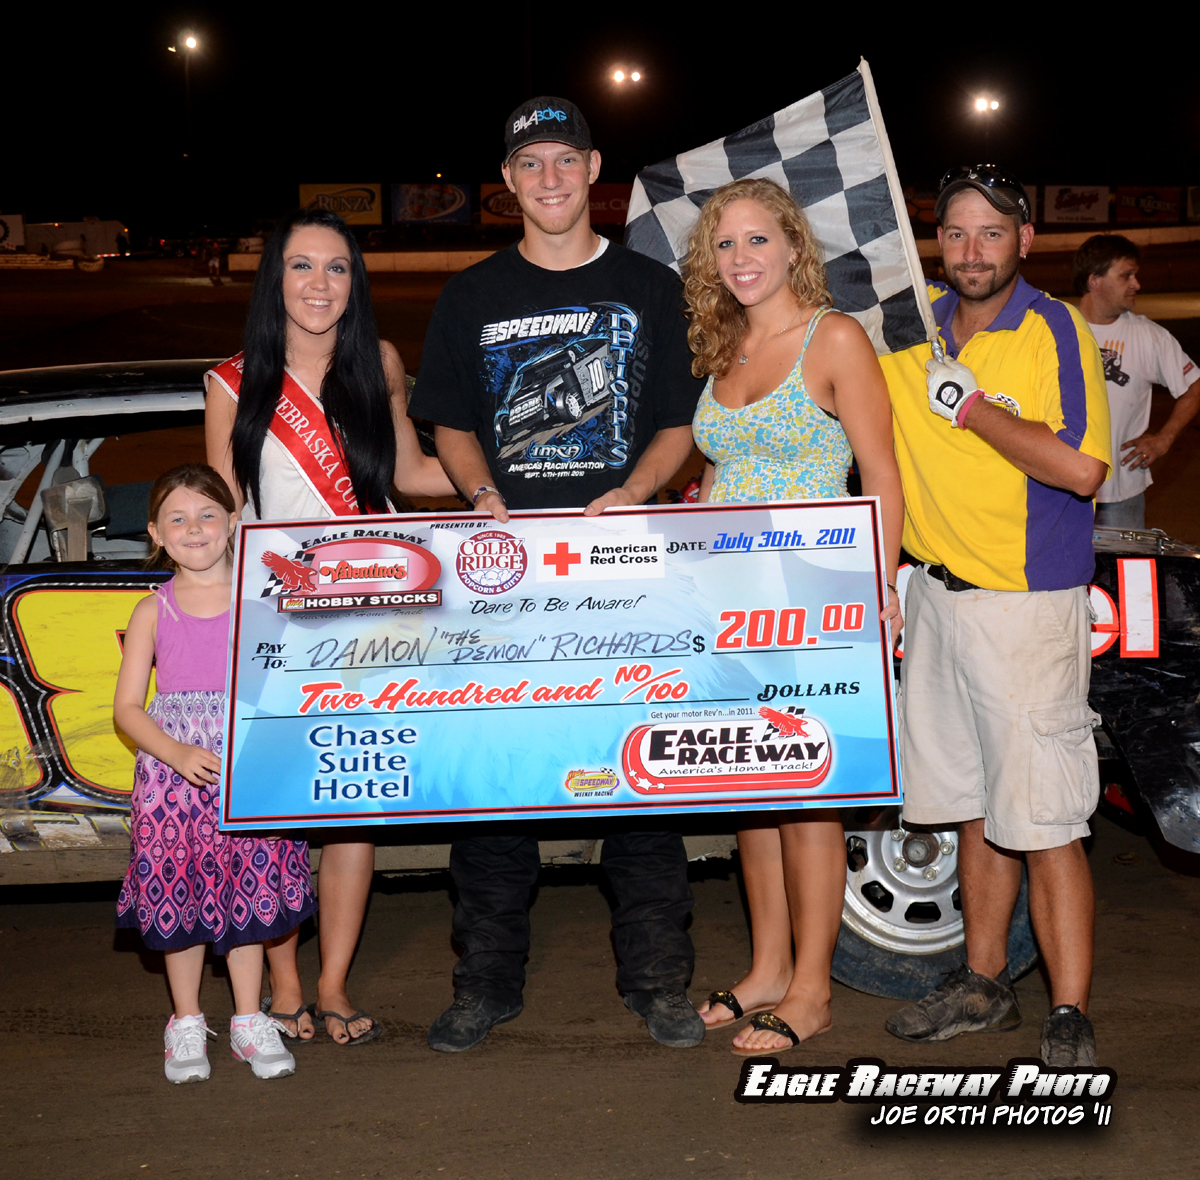 eagle-07-30-11-damon-richards-with-miss-nebraska-cup-katlin-leonard-and-miss-nebraska-cup-finalist-catrina-harris-and-little-miss-nebraska-cup-savanna-medows-along-with-flagman-billy-lloyd_0